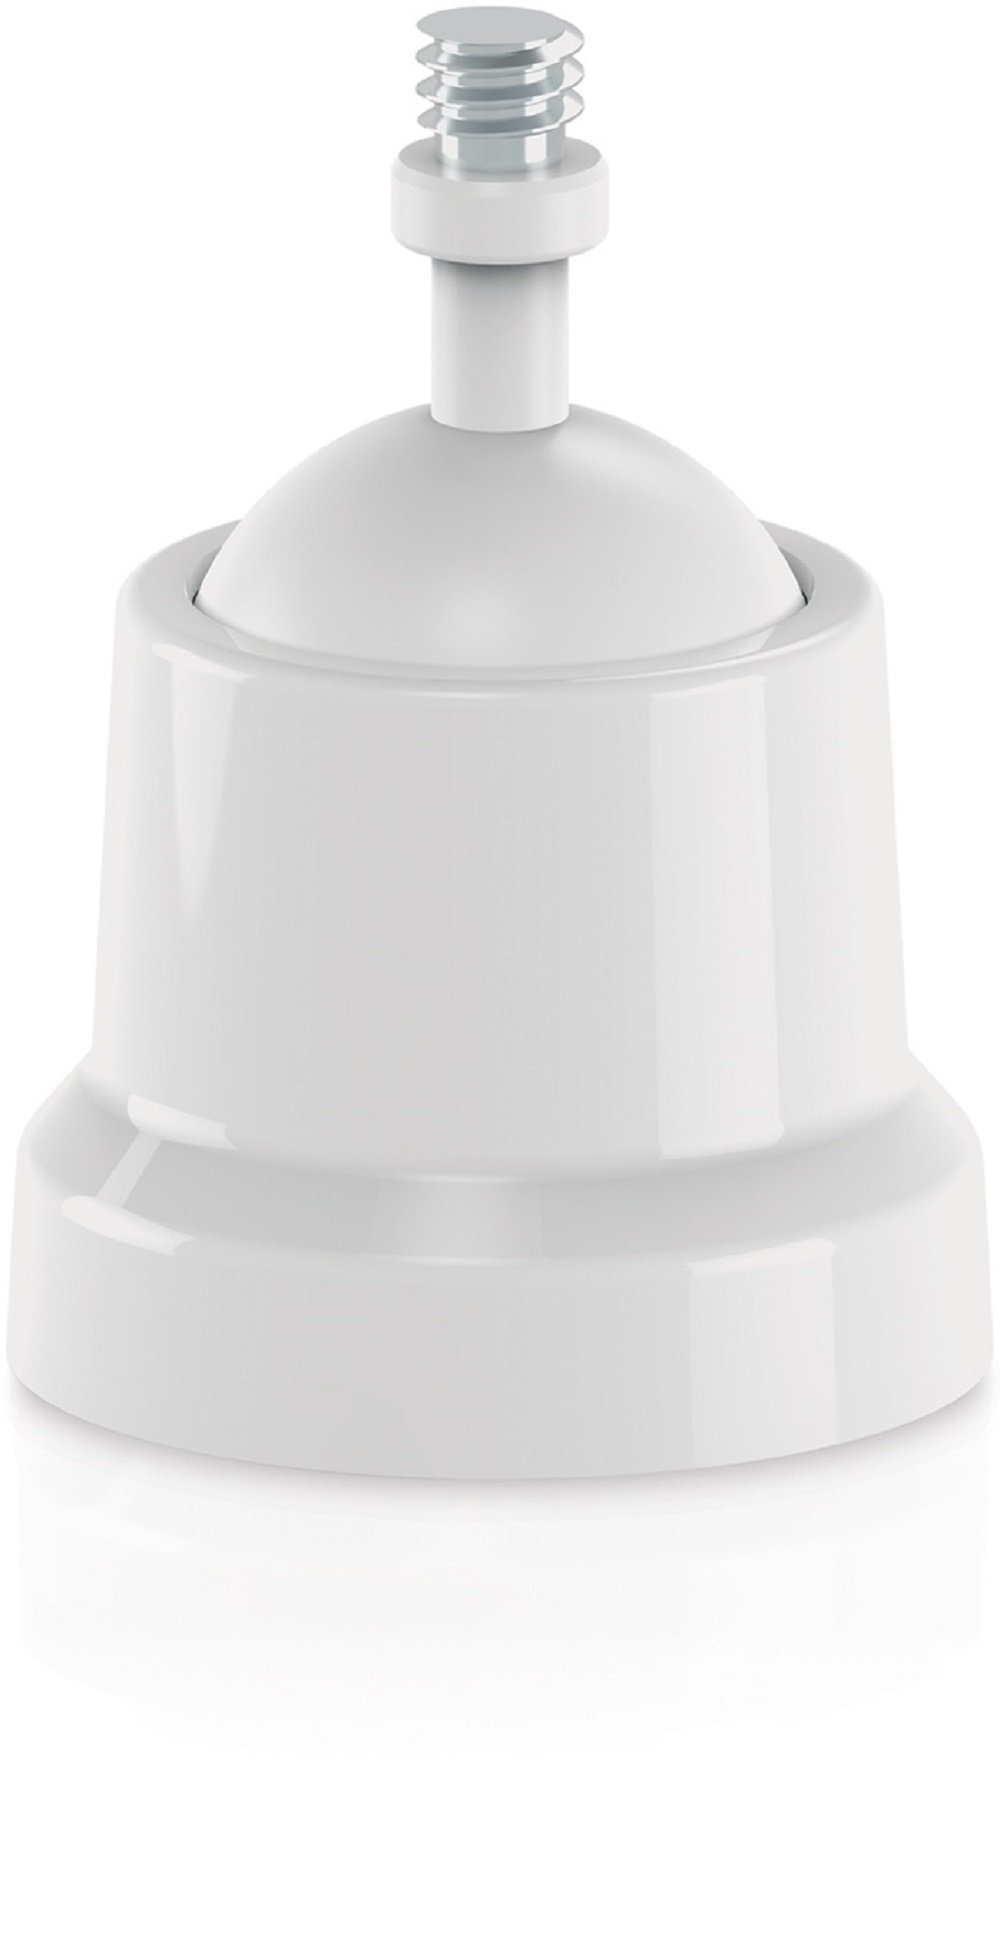 Arlo by NETGEAR Indoor/Outdoor Mount (Knob - White) – (VMA4000) [Official]